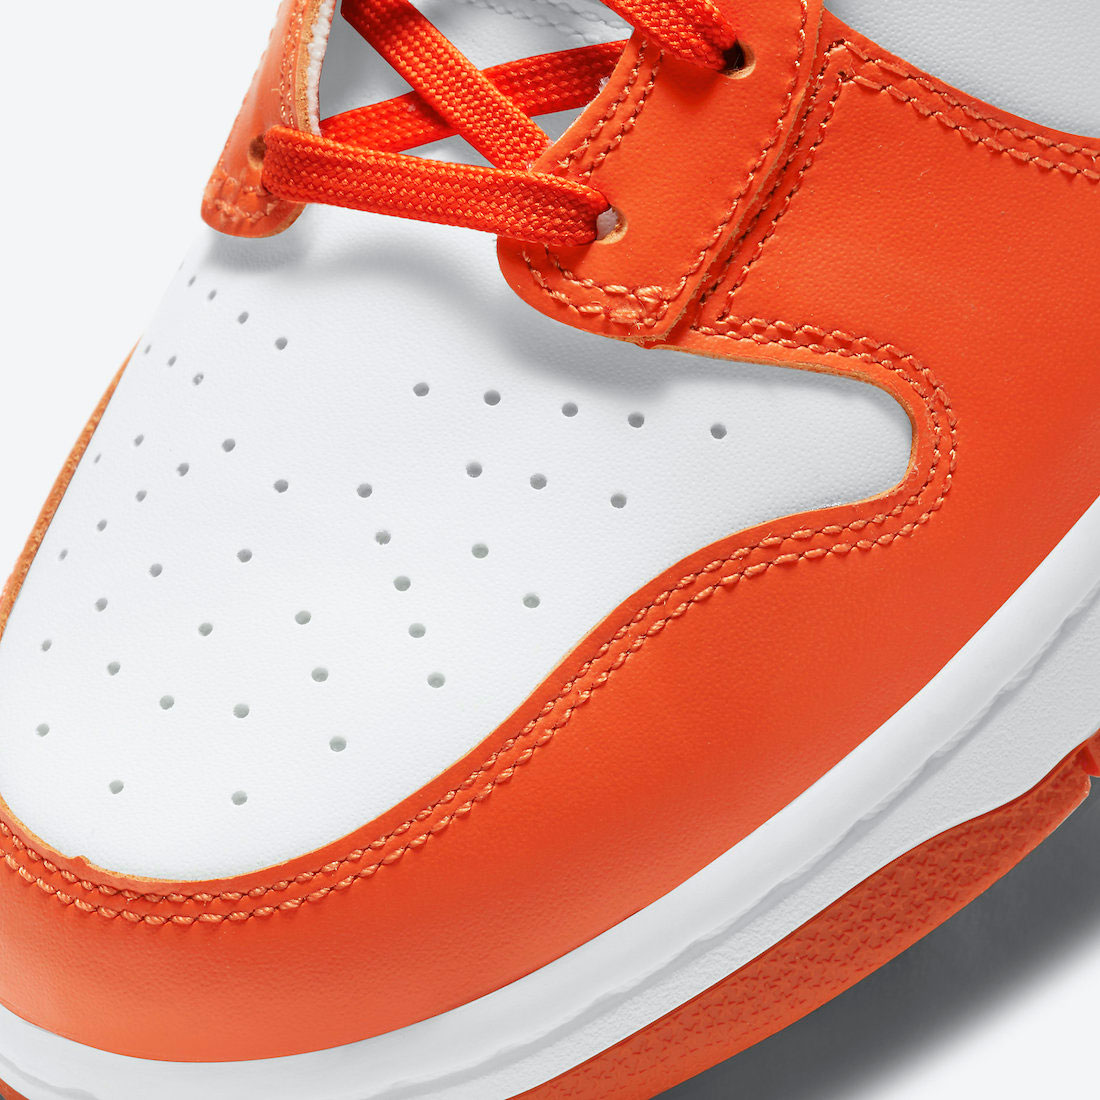 nike-dunk-high-syracuse-orange-release-date-price-resell-where-to-buy-7